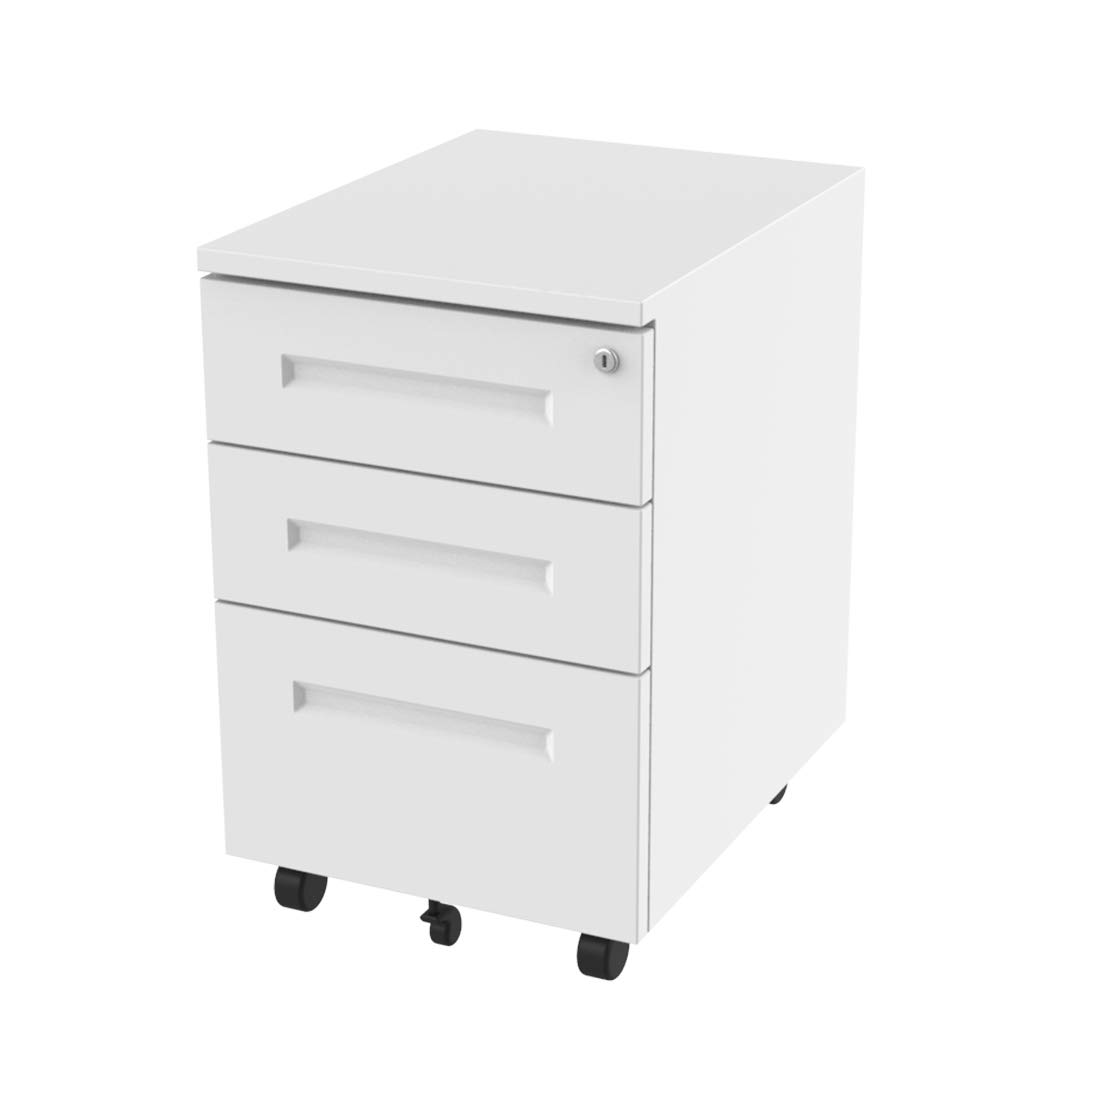 FlexiSpot File Cabinet Underdesk Mobile Pedestal Lockable Container 3-Drawer CB31W (White) by FLEXISPOT